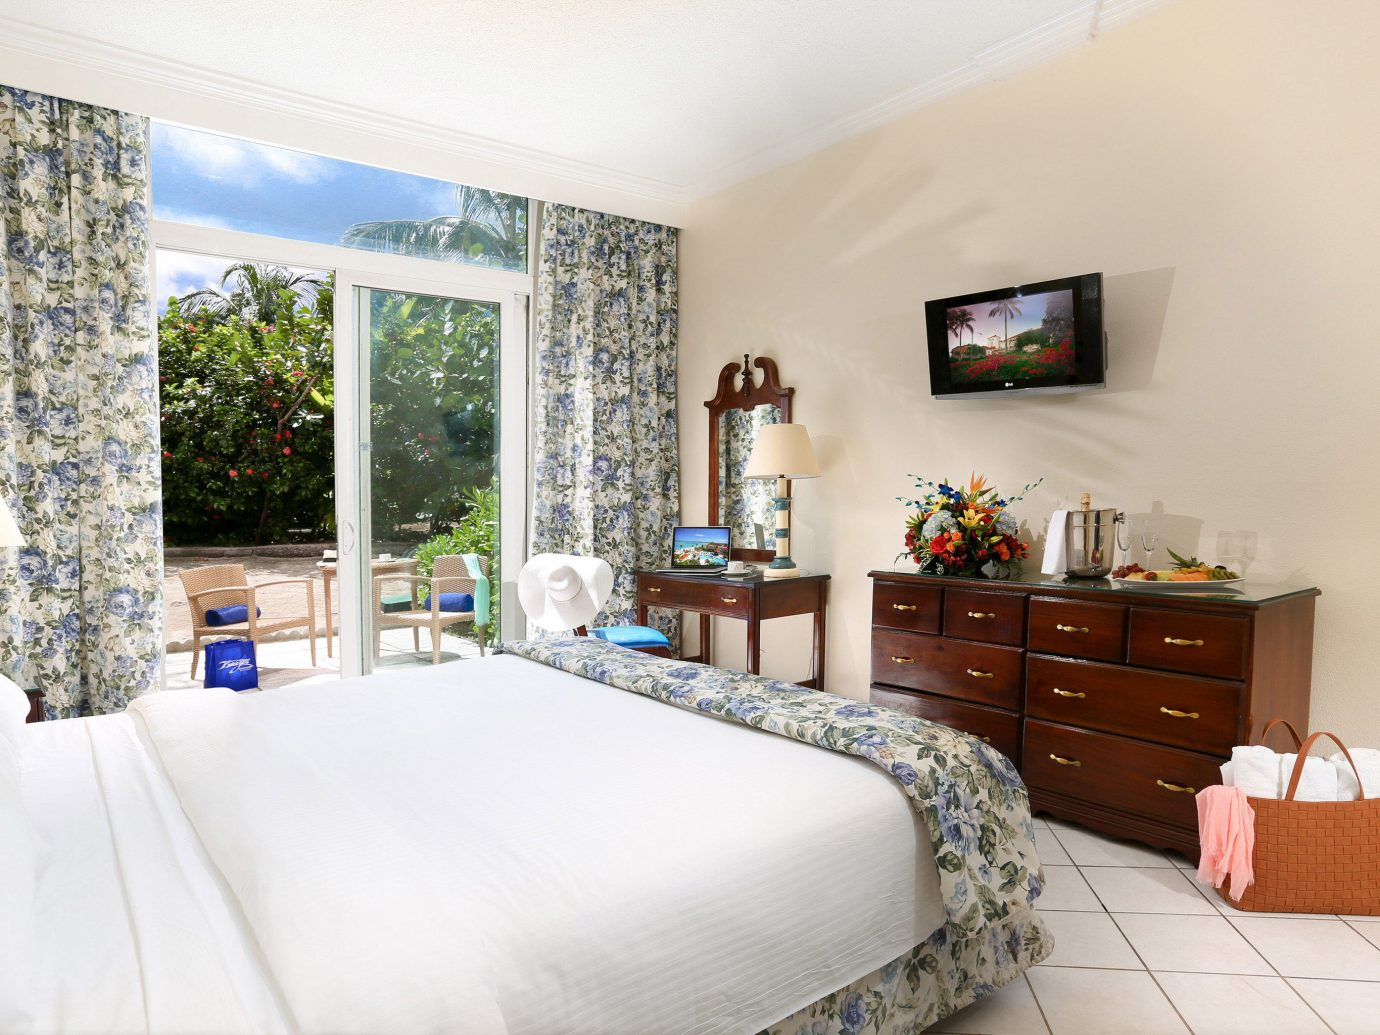 All-Inclusive Resorts Budget caribbean Hotels indoor wall floor bed room property window Bedroom interior design real estate Suite home estate hotel bed frame interior designer pillow ceiling furniture decorated